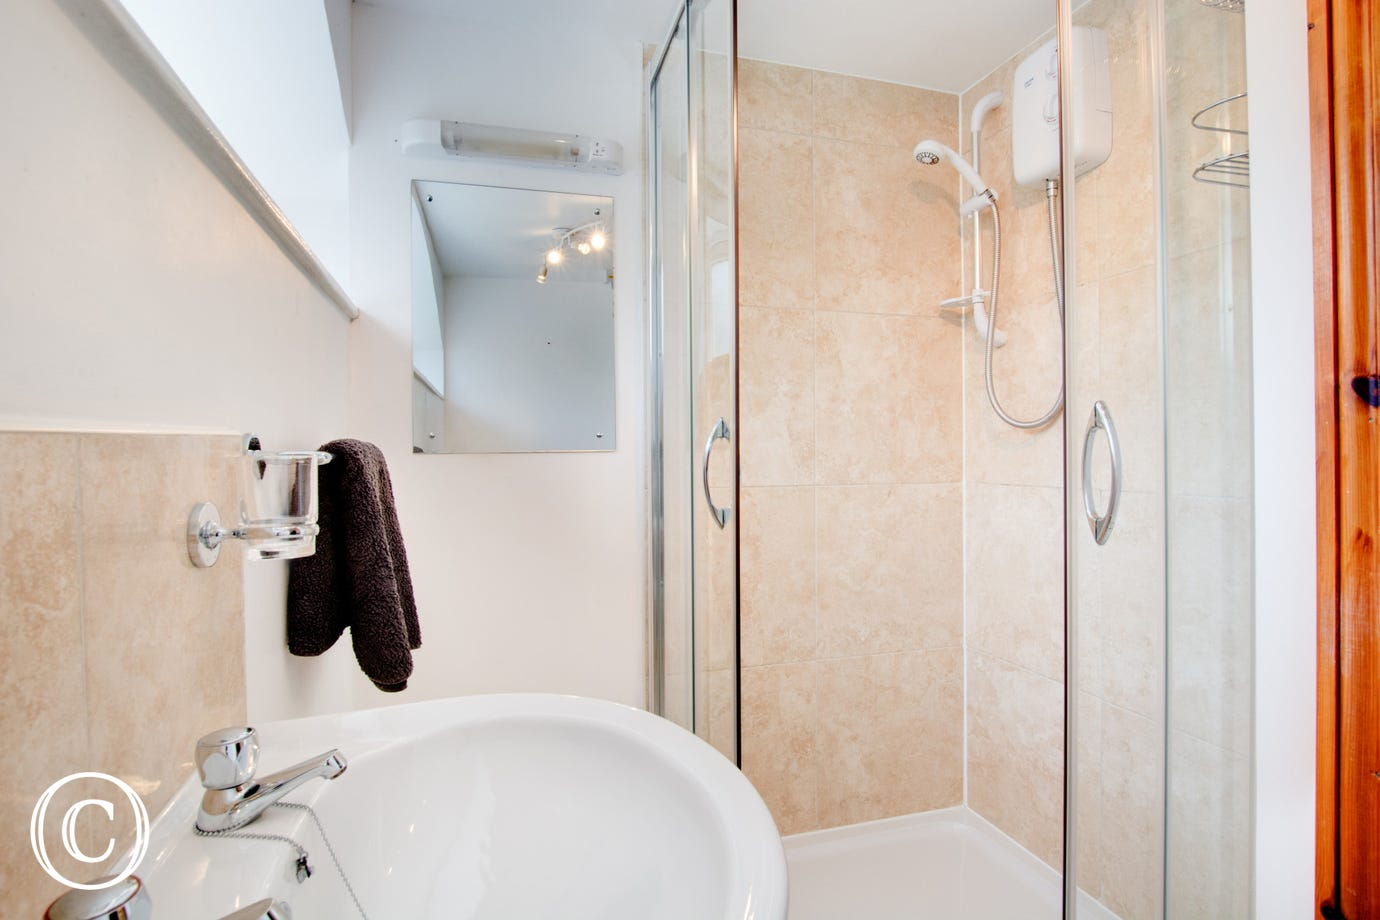 Compact ensuite showing shower cubicle and basin.